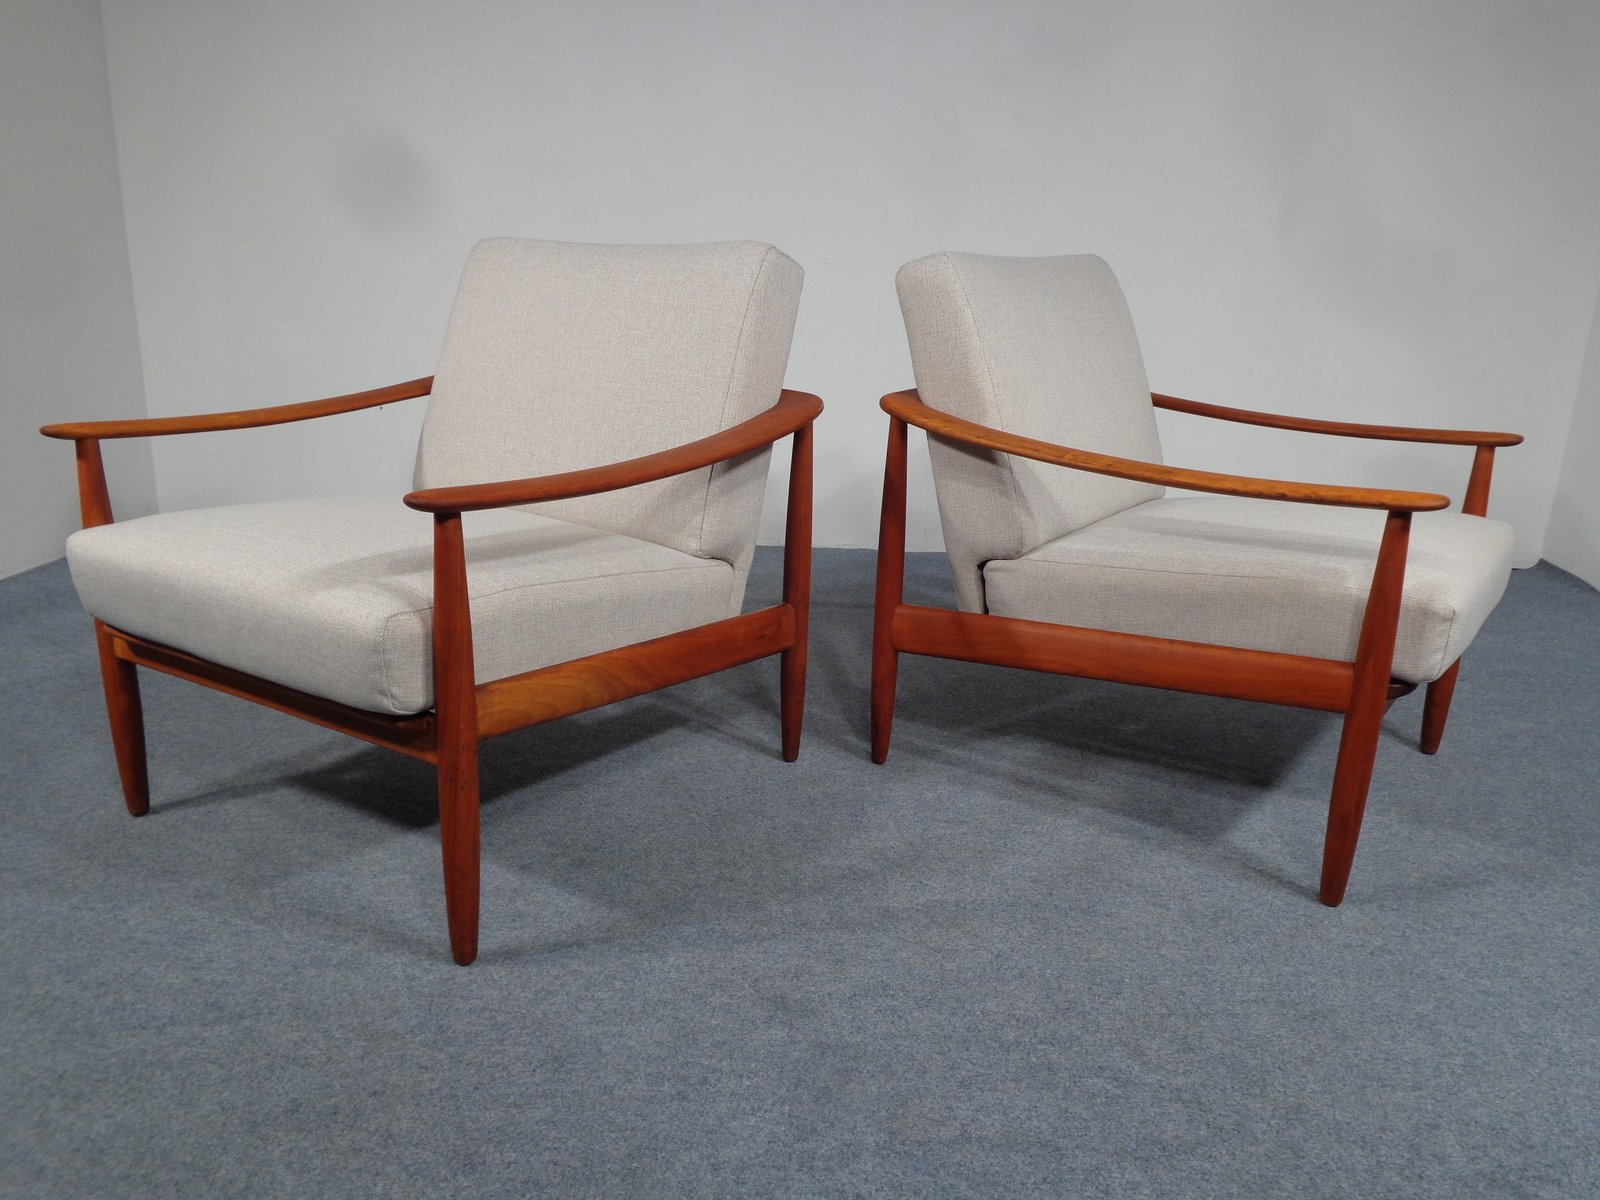 mid century kirschholz sessel von knoll 1950er 2er set. Black Bedroom Furniture Sets. Home Design Ideas